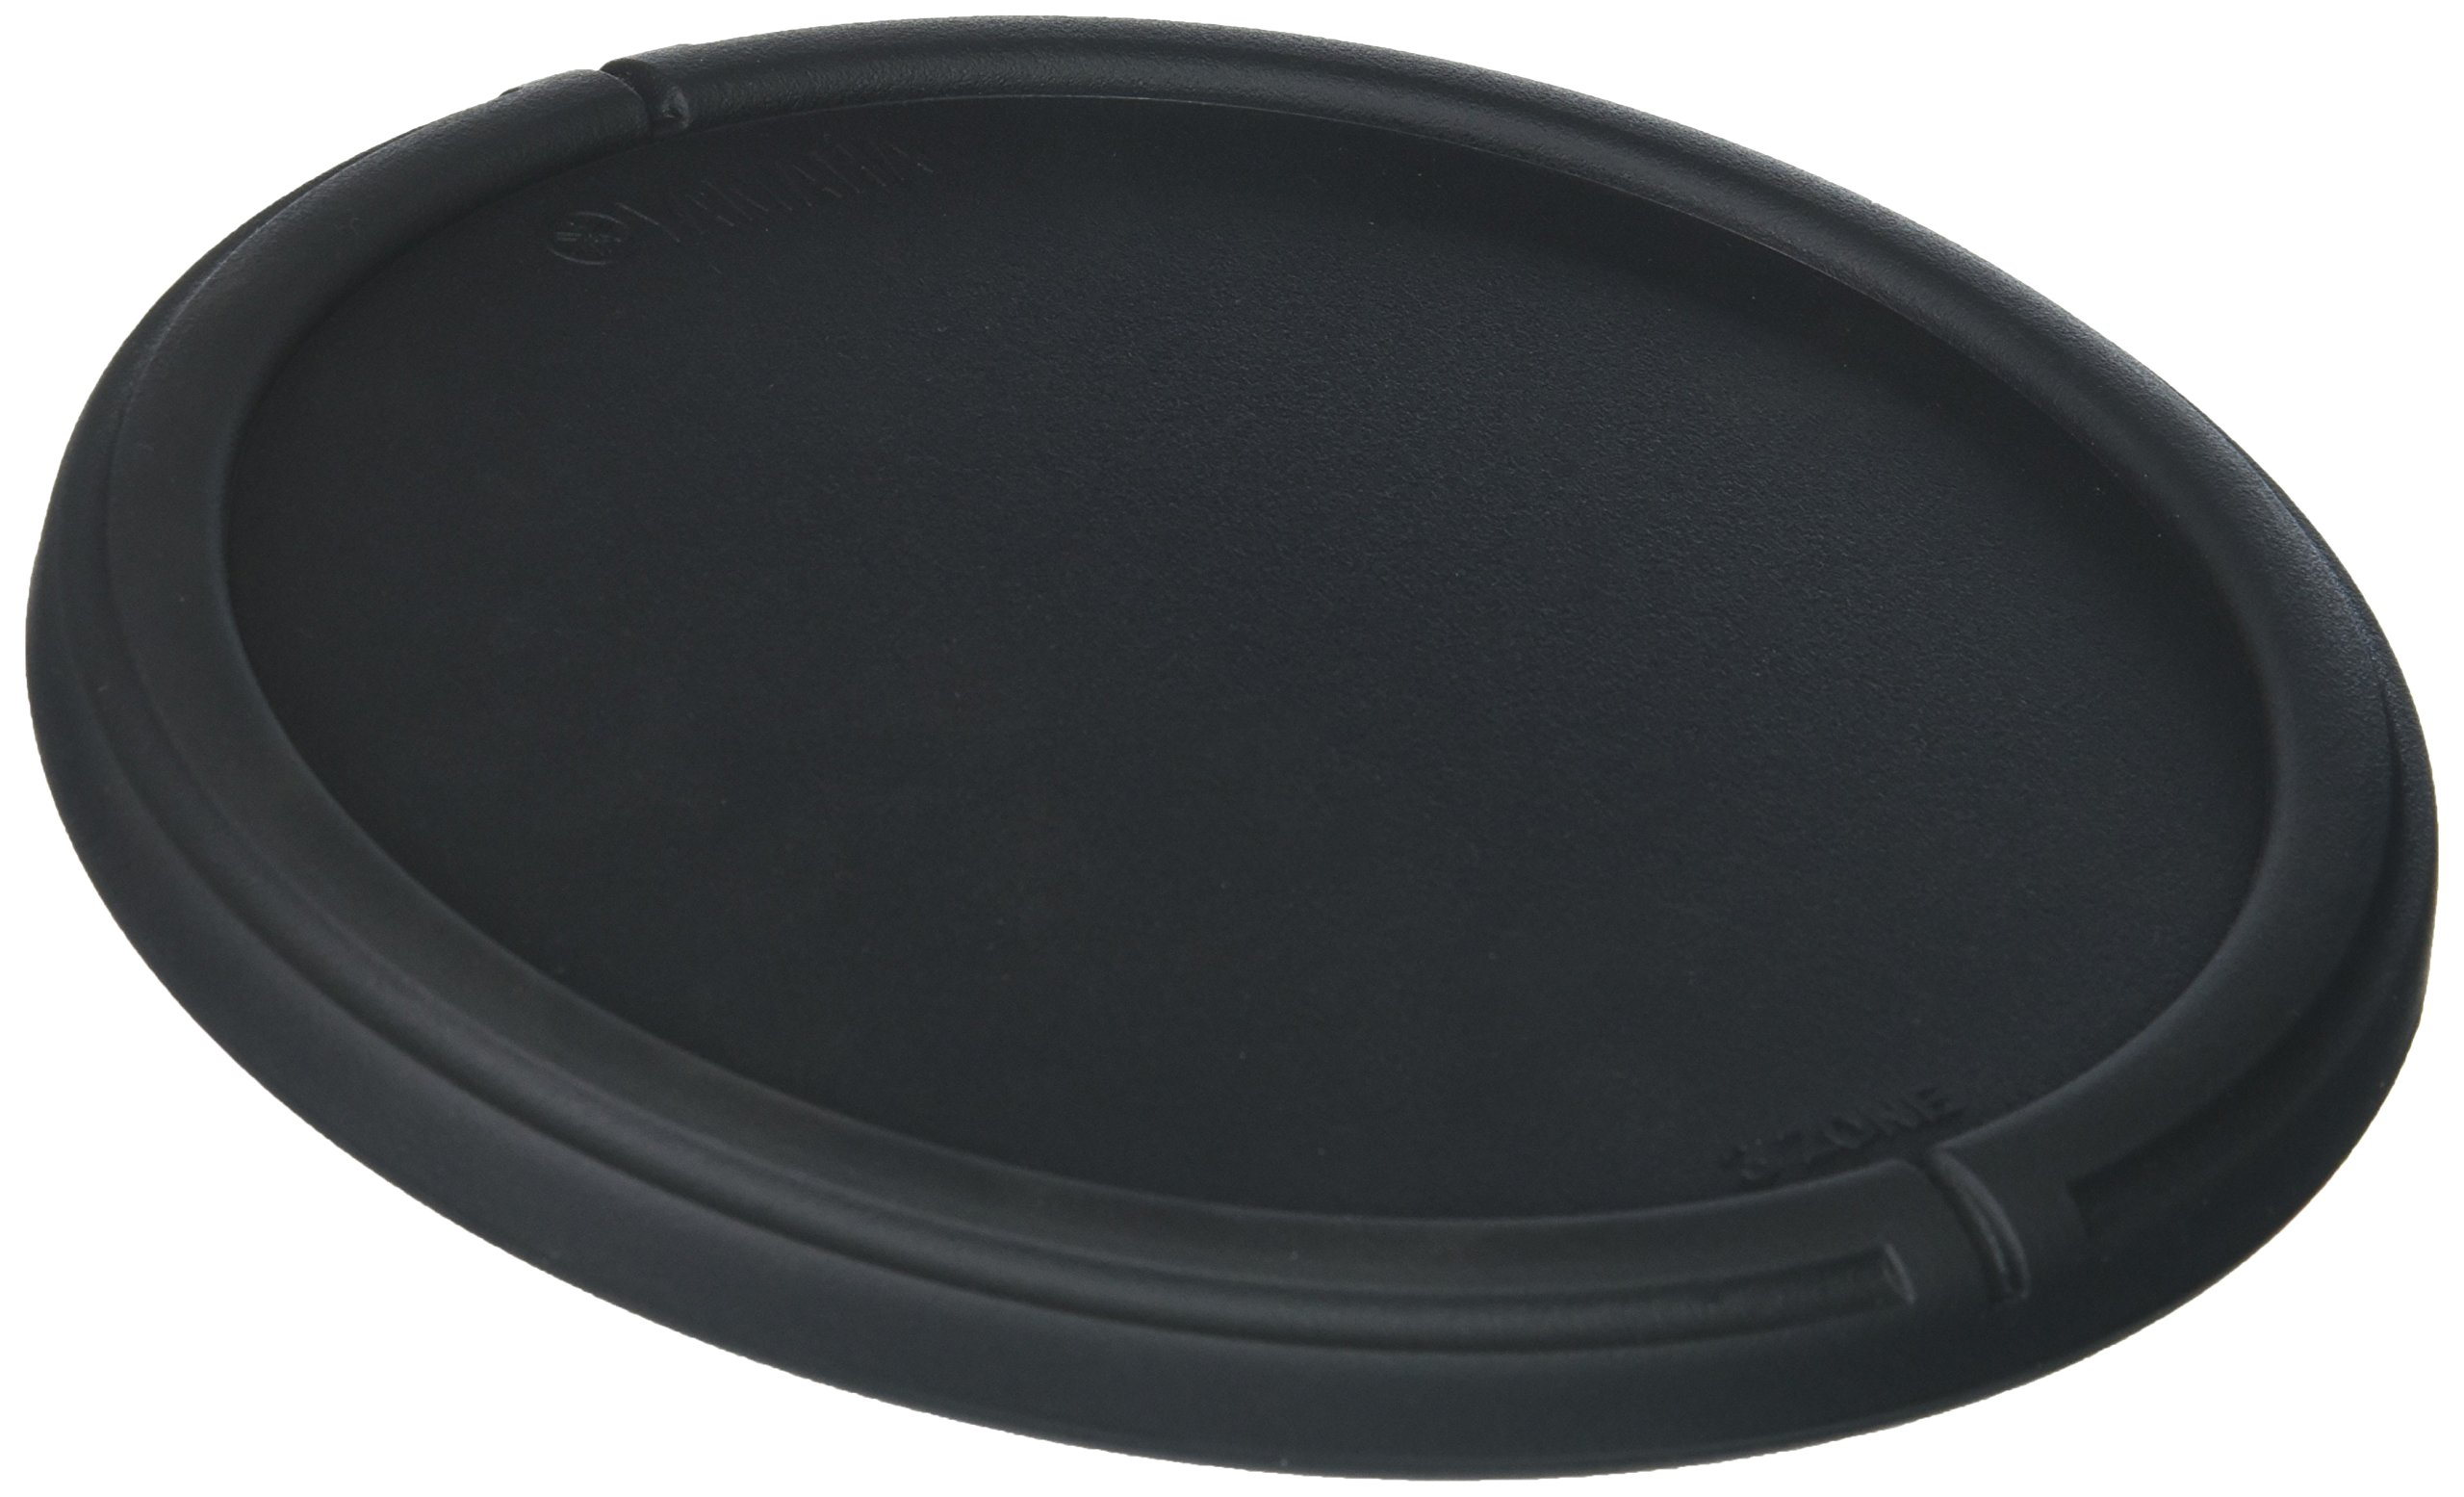 Yamaha TP70S 3-Zone 7.5-Inch Electronic Drum Pad